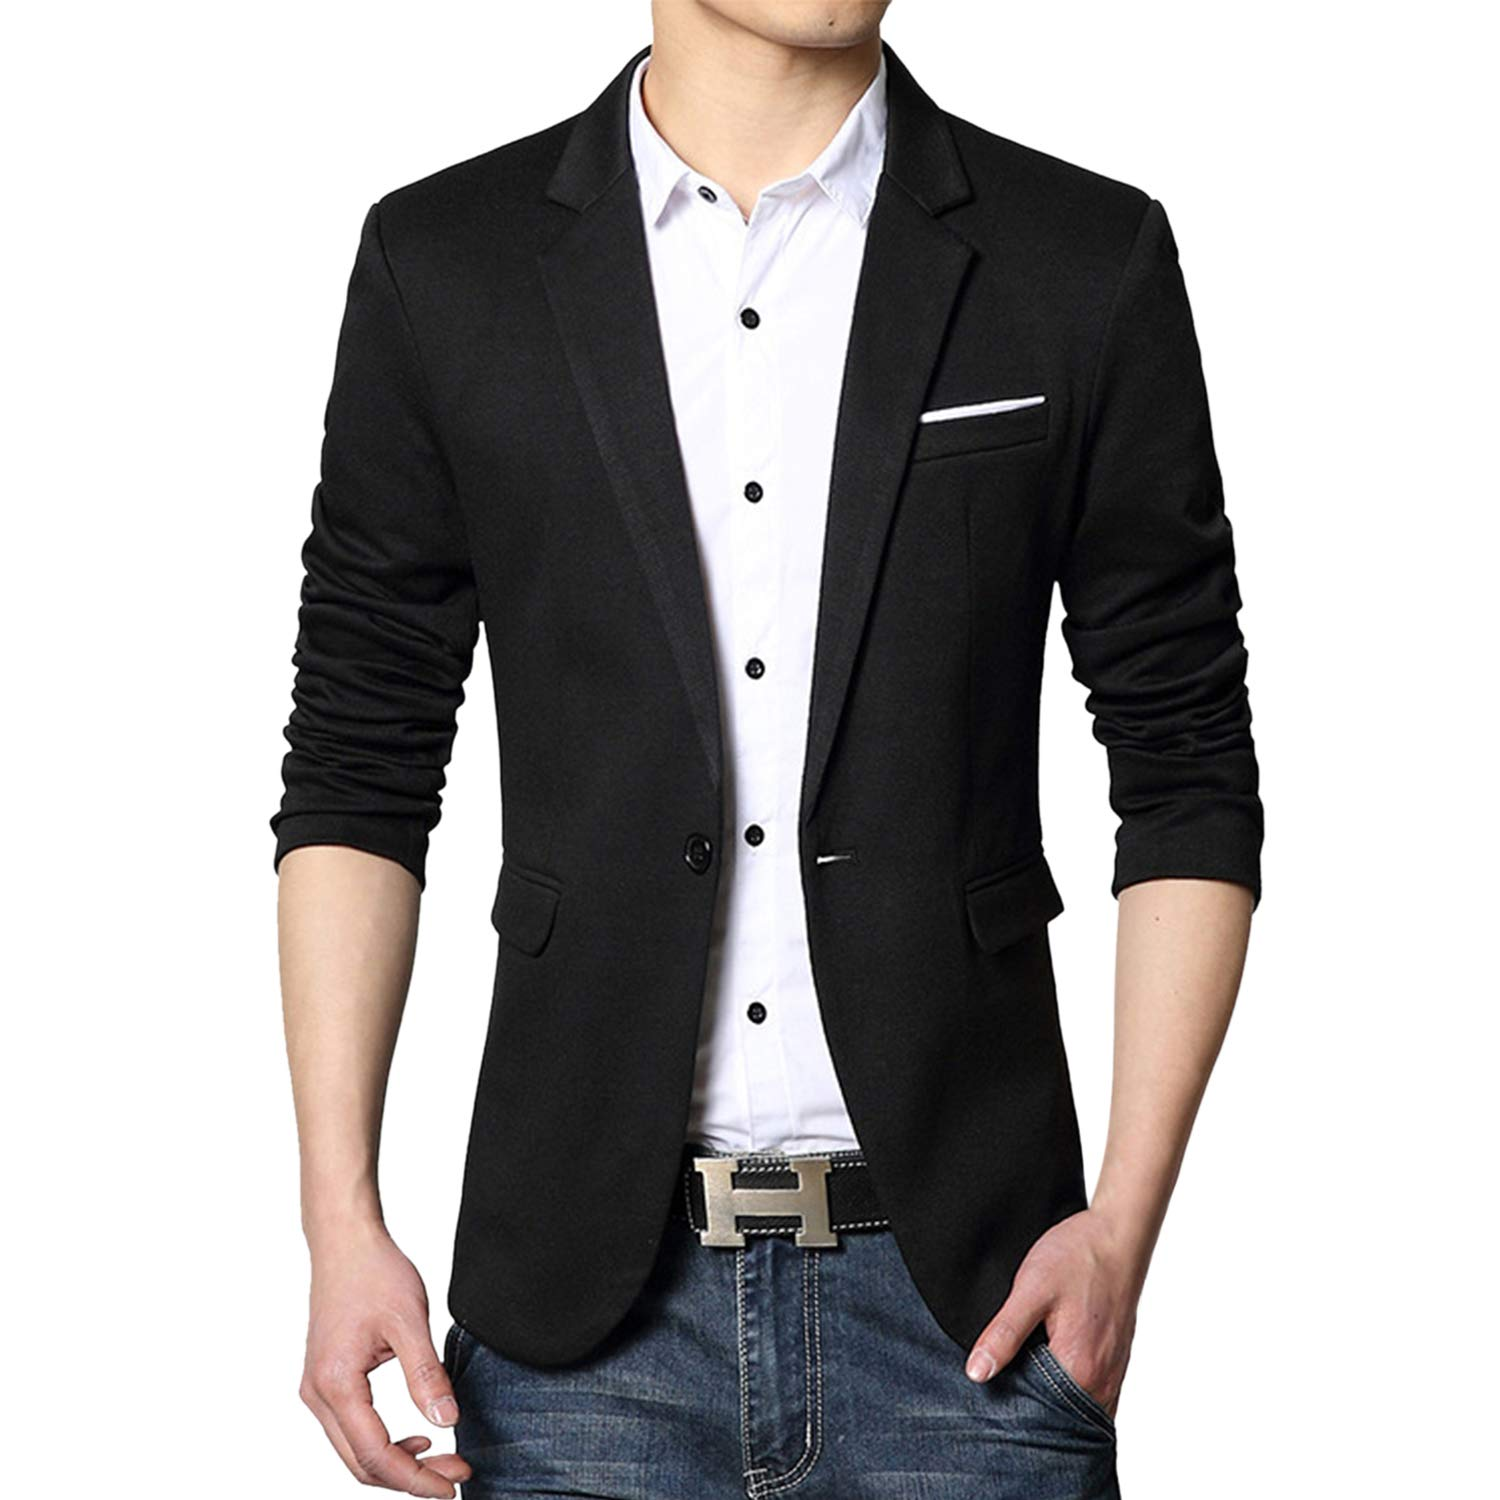 Previn Mens Slim Fit Blazer Cotton Casual Solid One Button Jacket Sport Coat